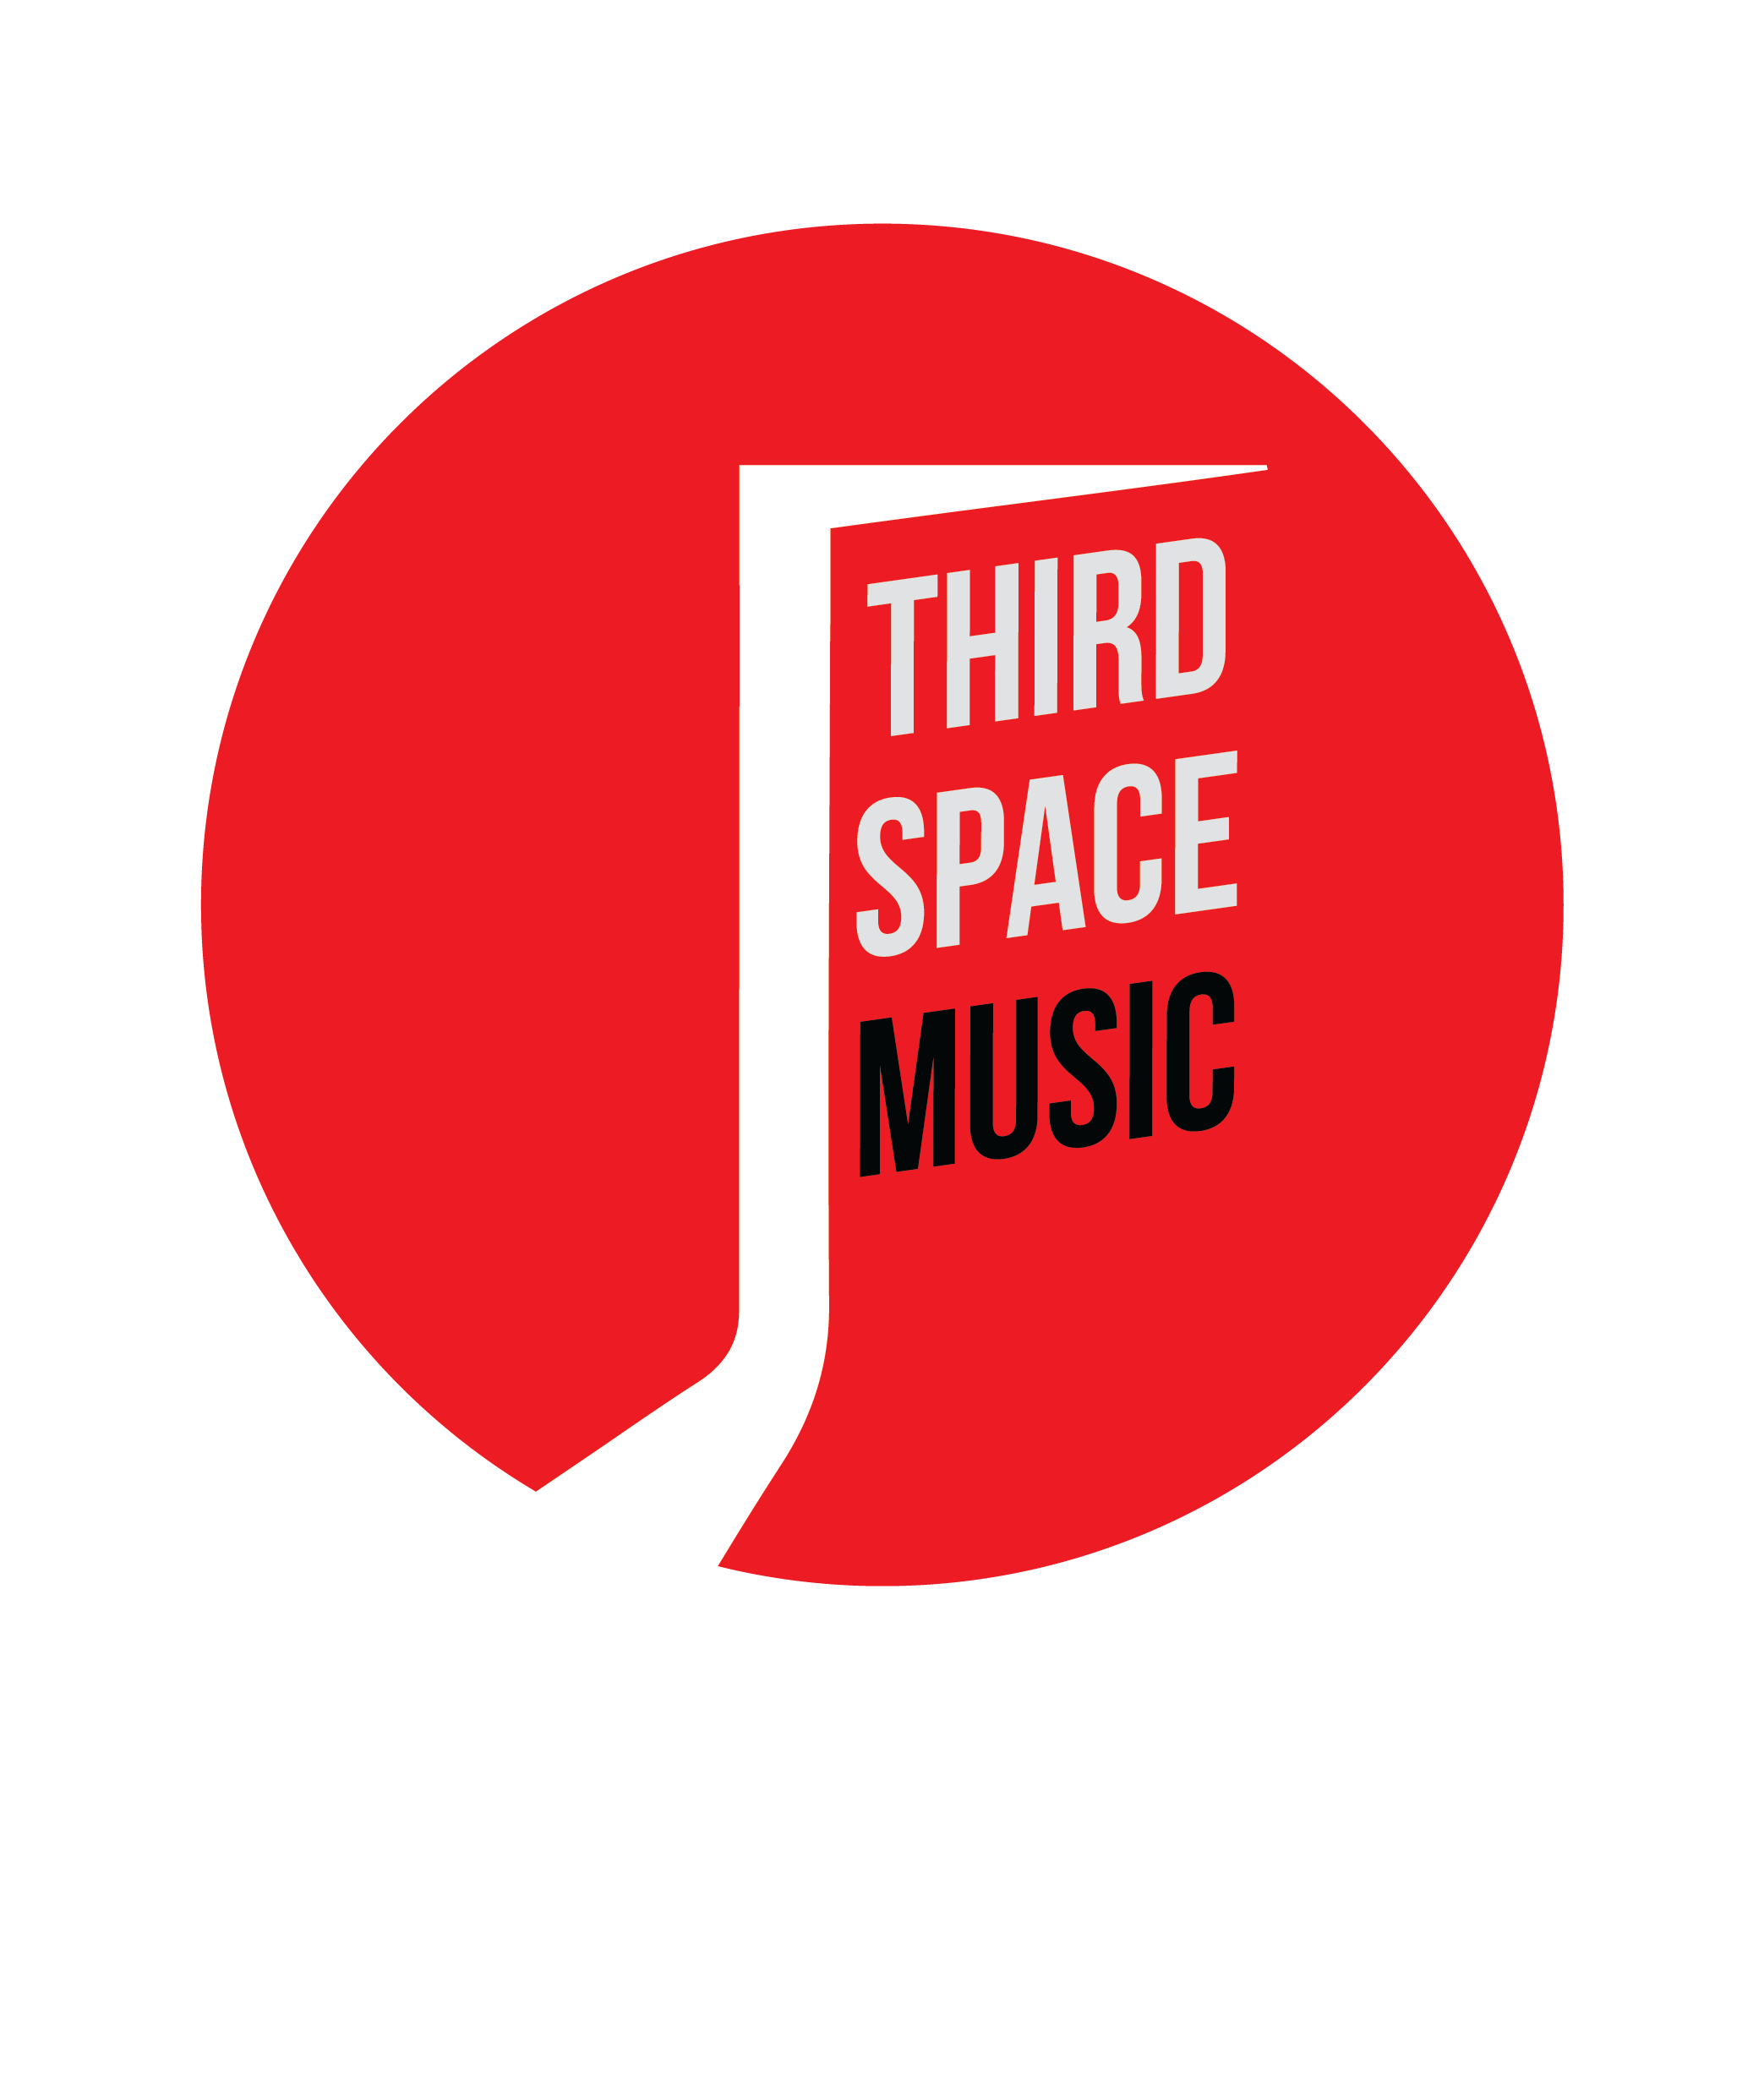 Third Space Music